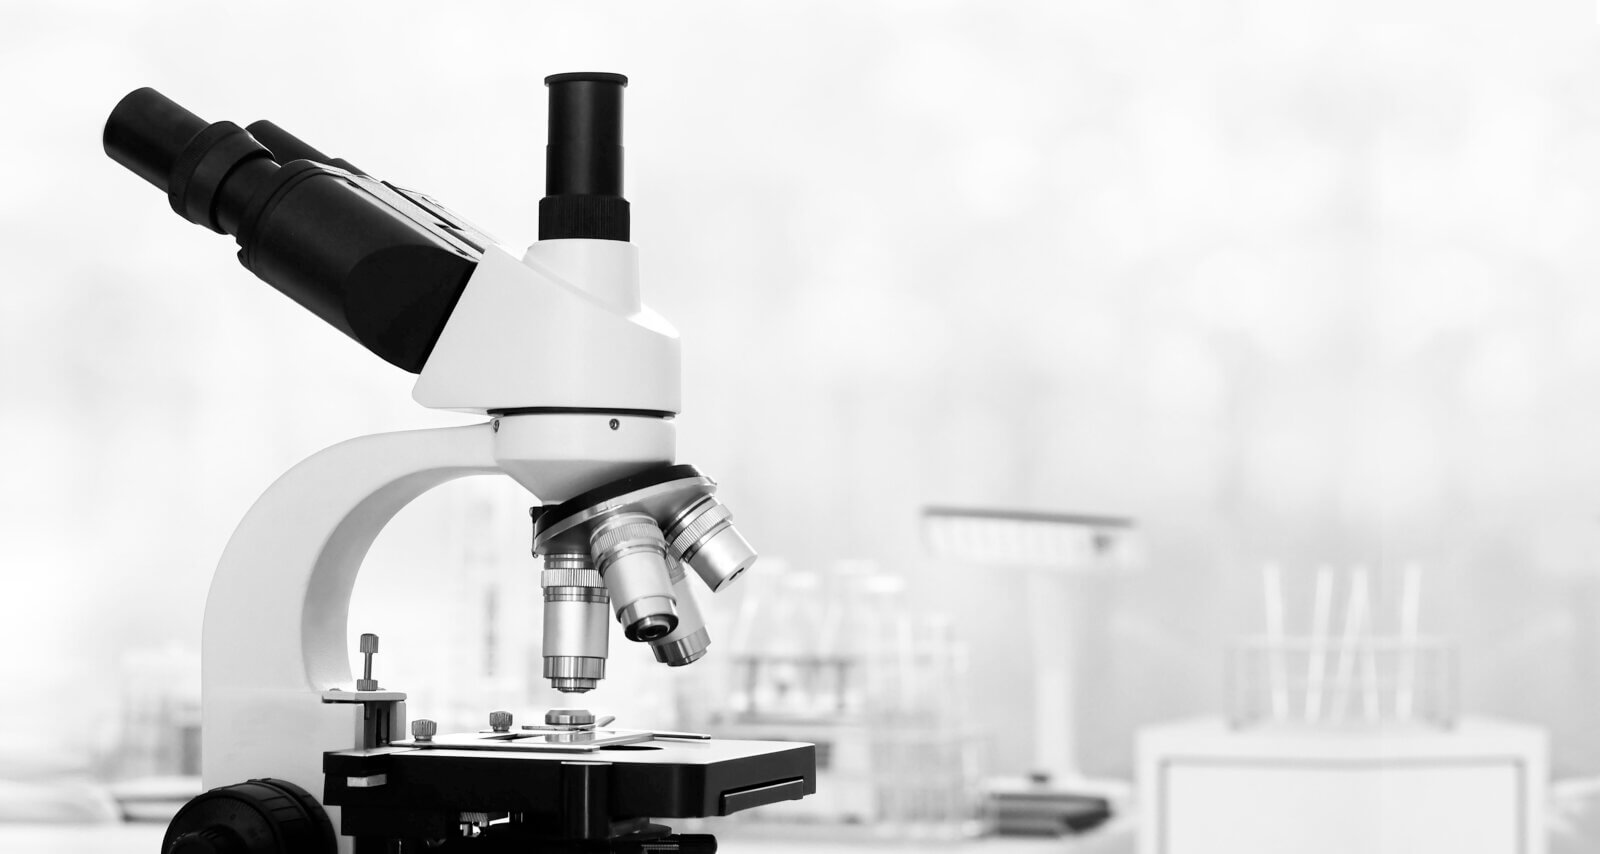 laboratory-lens-of-microscope-isolated-scientific-research-background-black-and-white